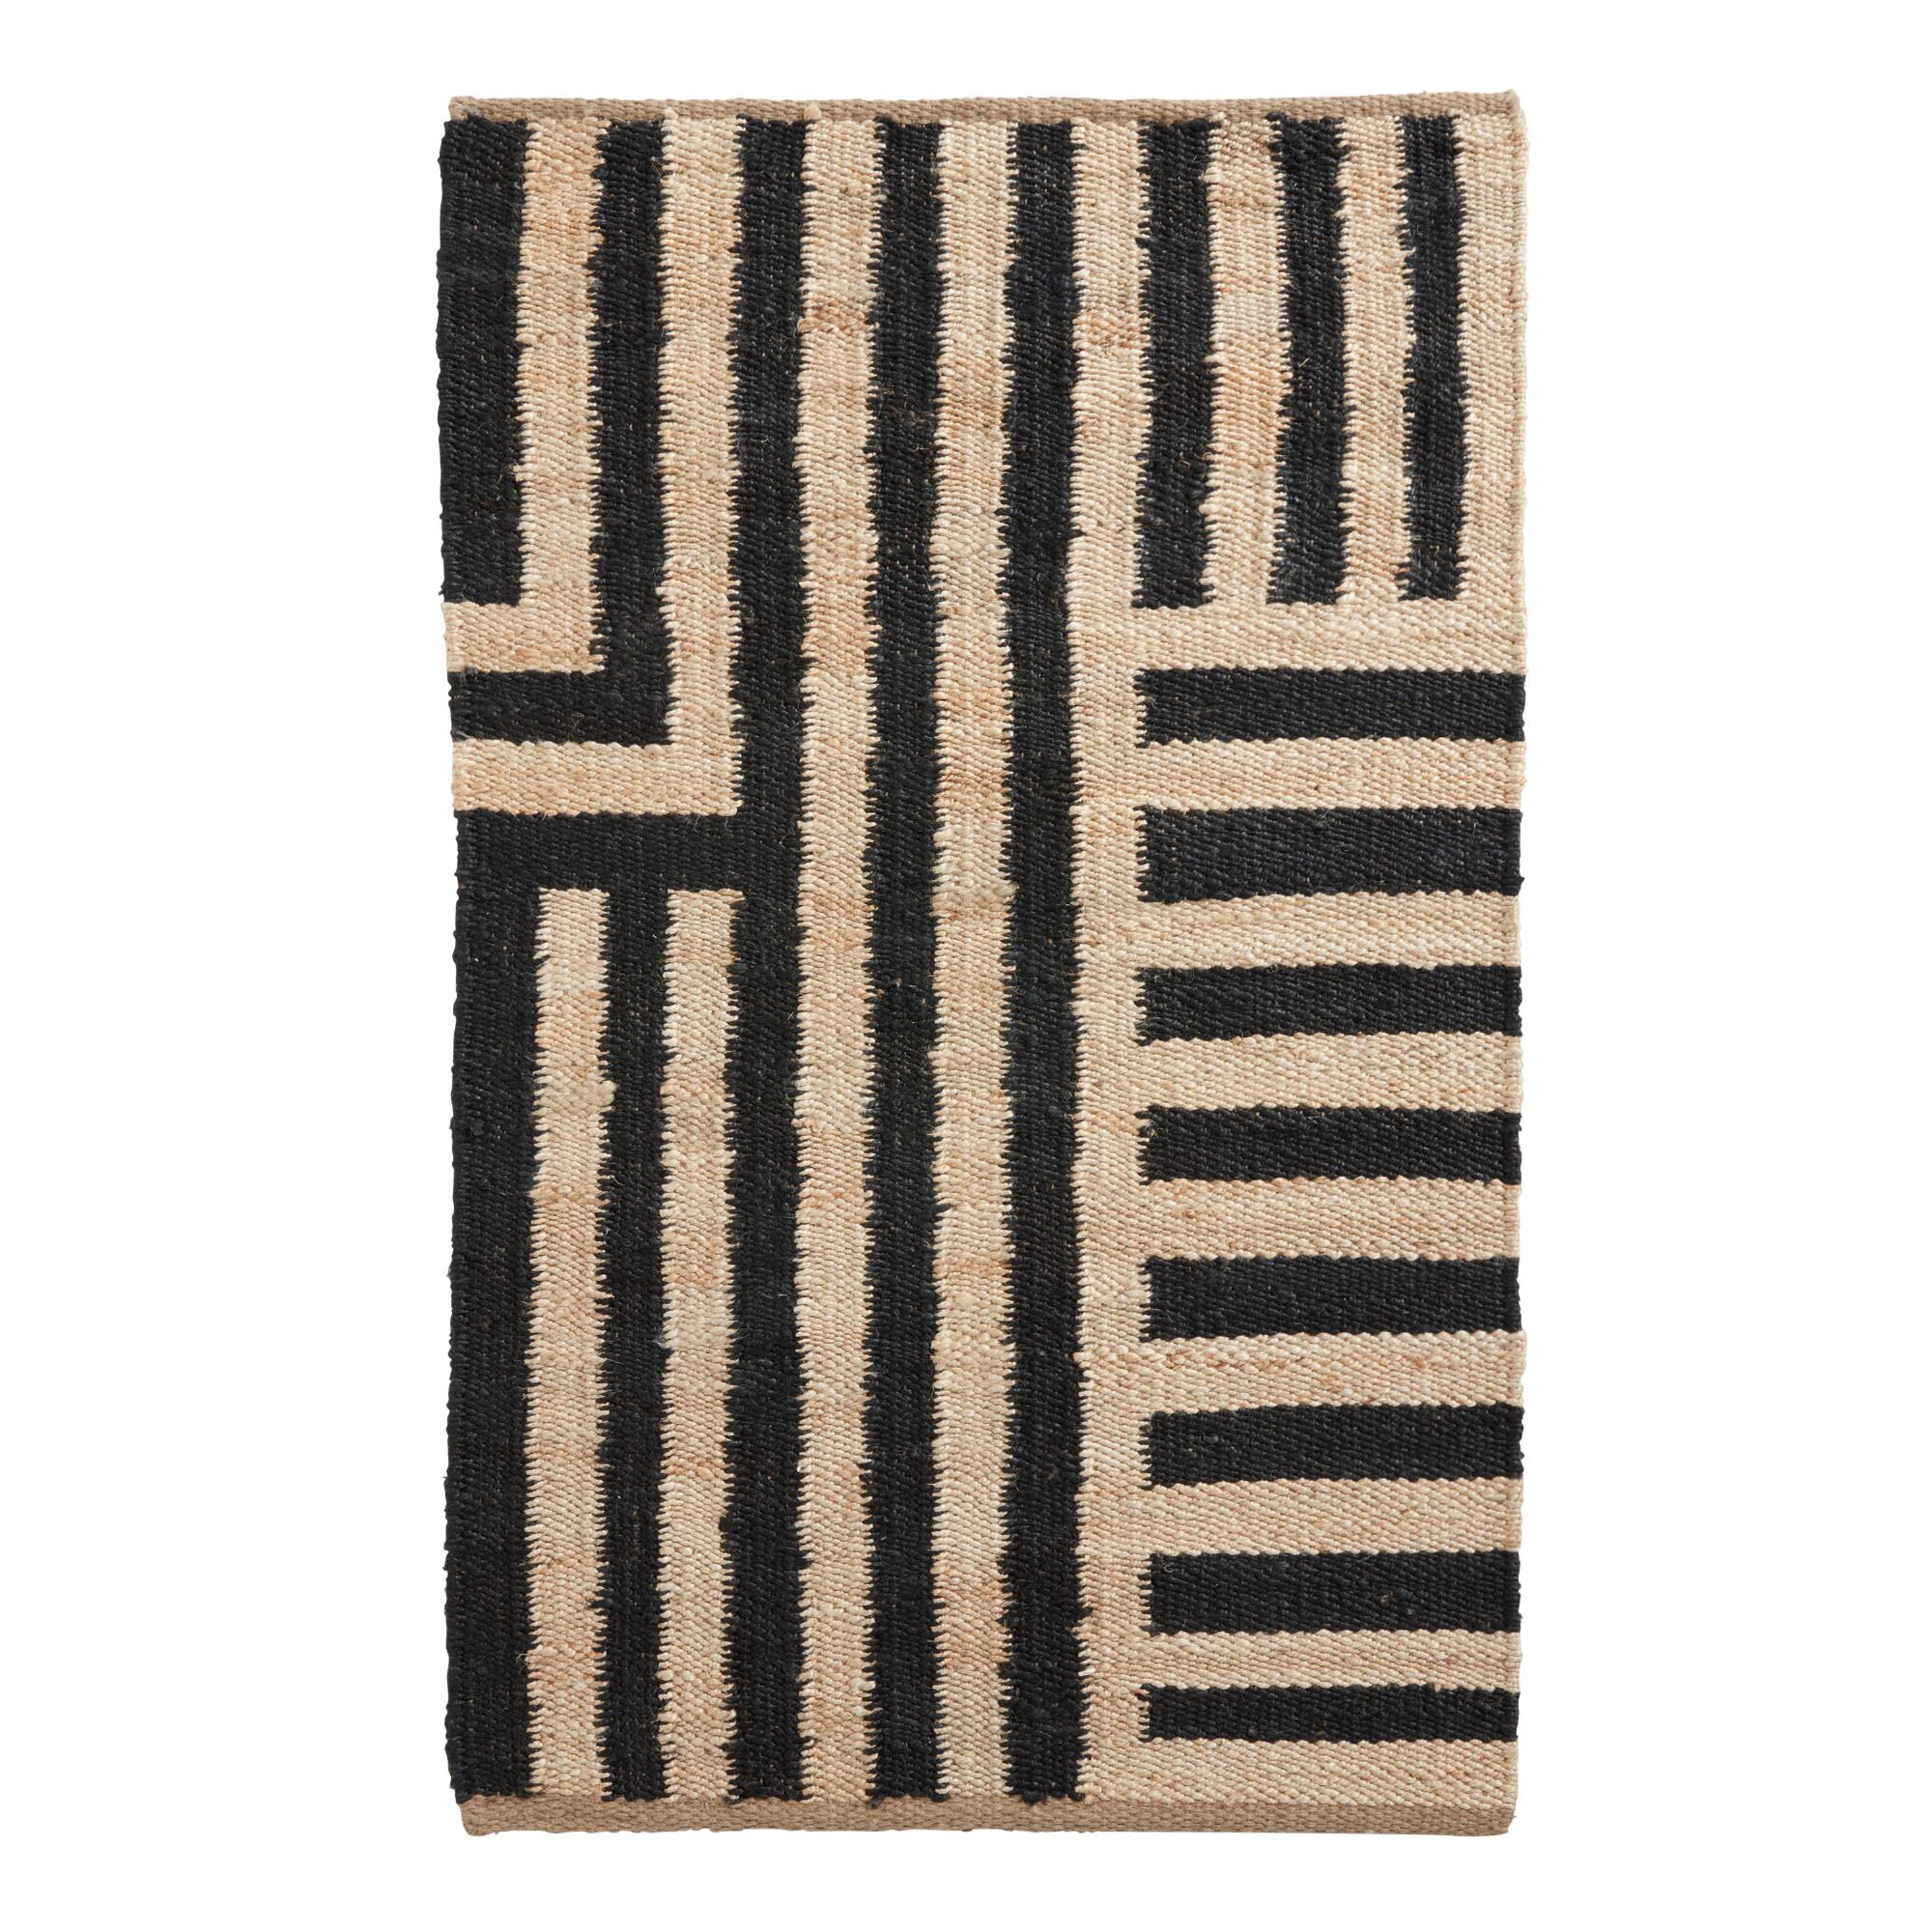 Natural and Black Striped Jute Ryder Area Rug - 3' x 5' by World Market